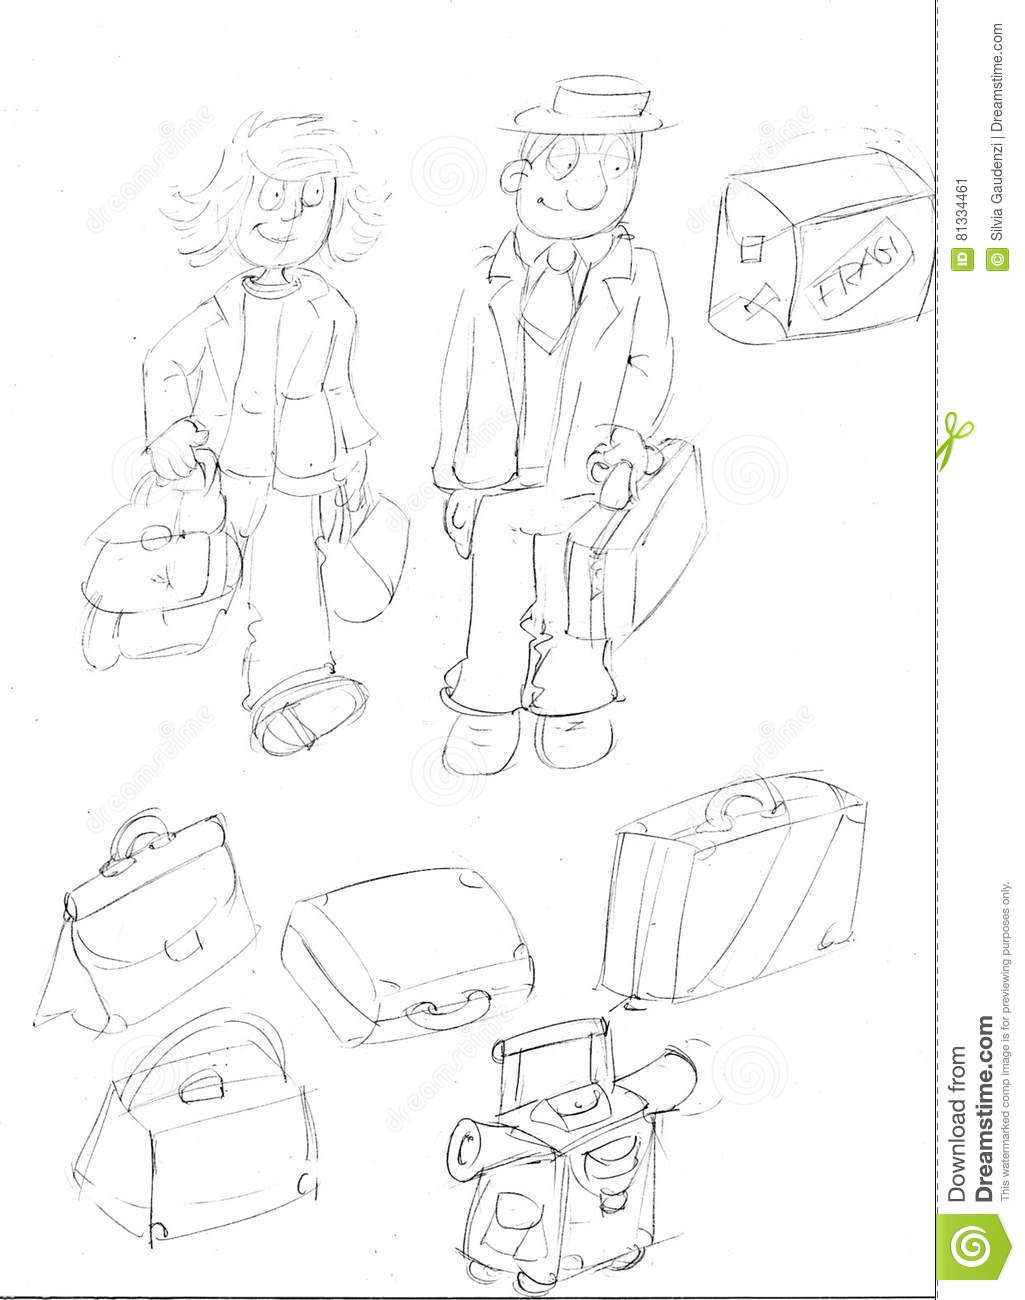 Pair of boys leaving with suitcasessketches and pencil sketches and